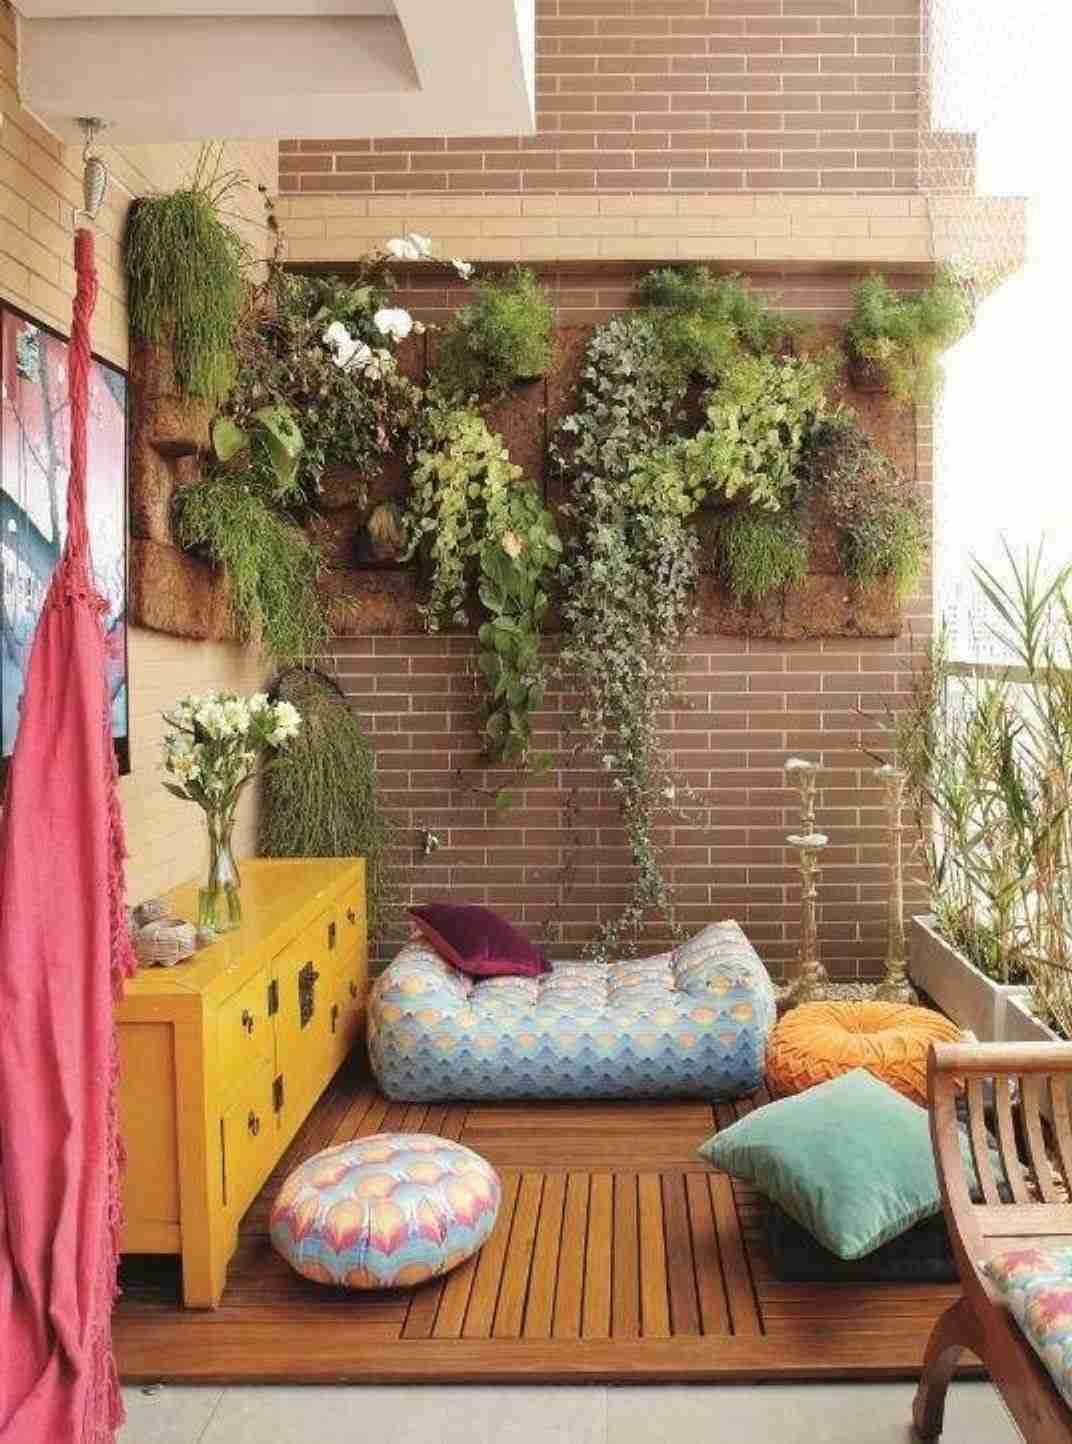 Photo of Balcony decorating ideas #interiordecorating#styledforliving#interior4all#homest…